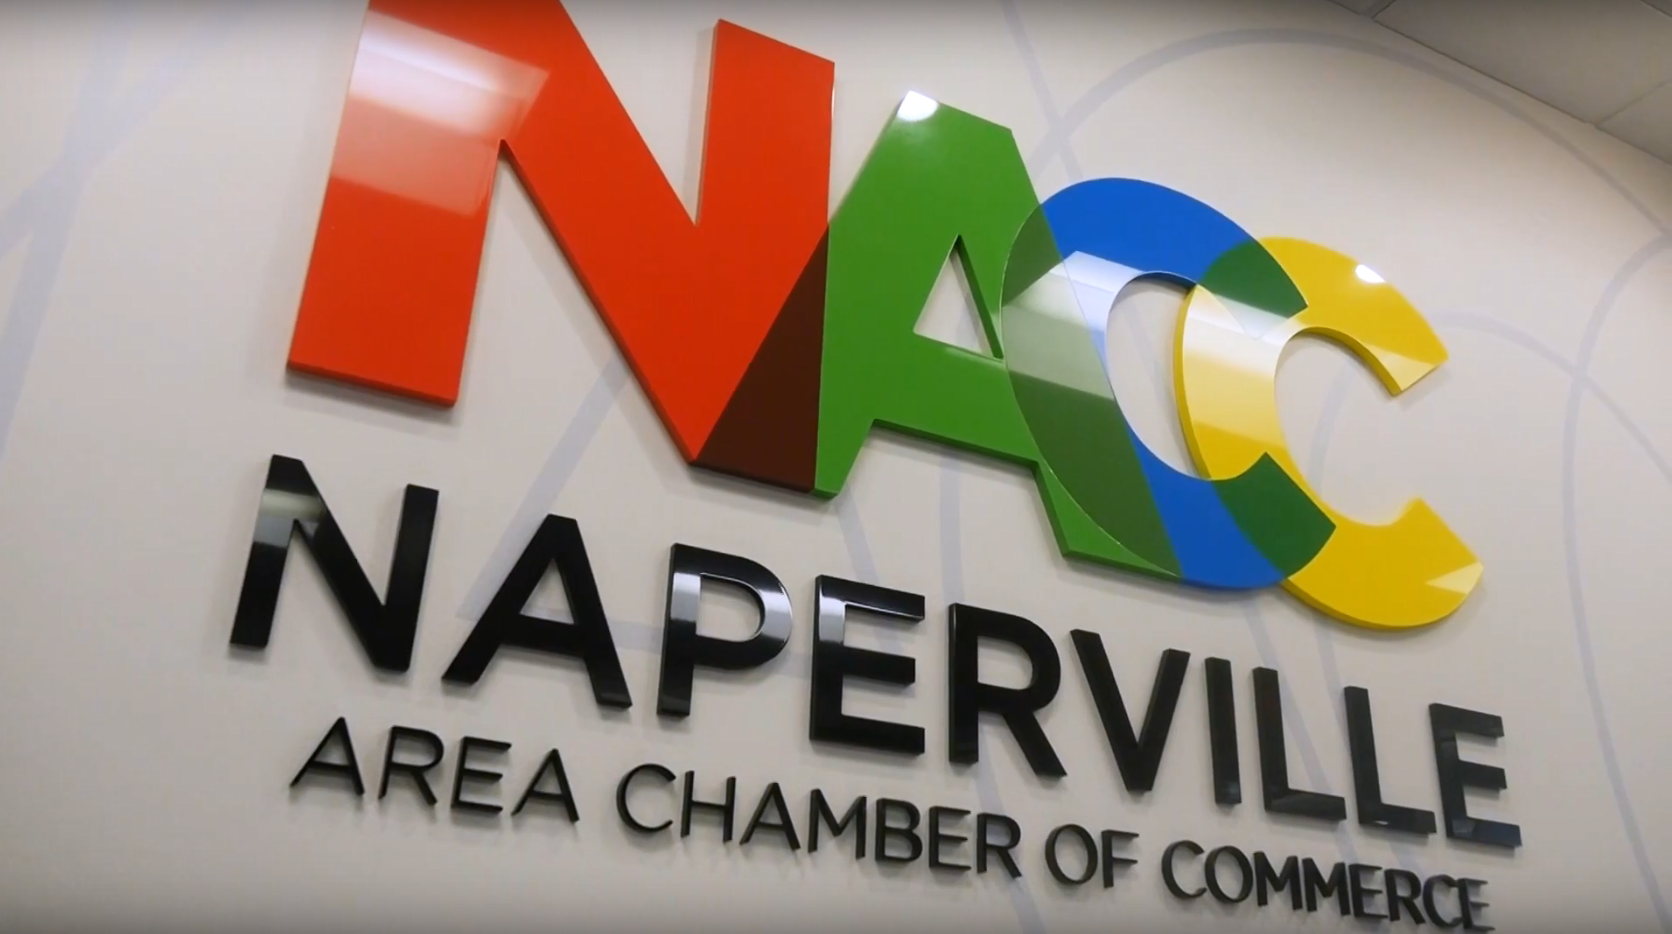 Naperville chamber wall logo.png